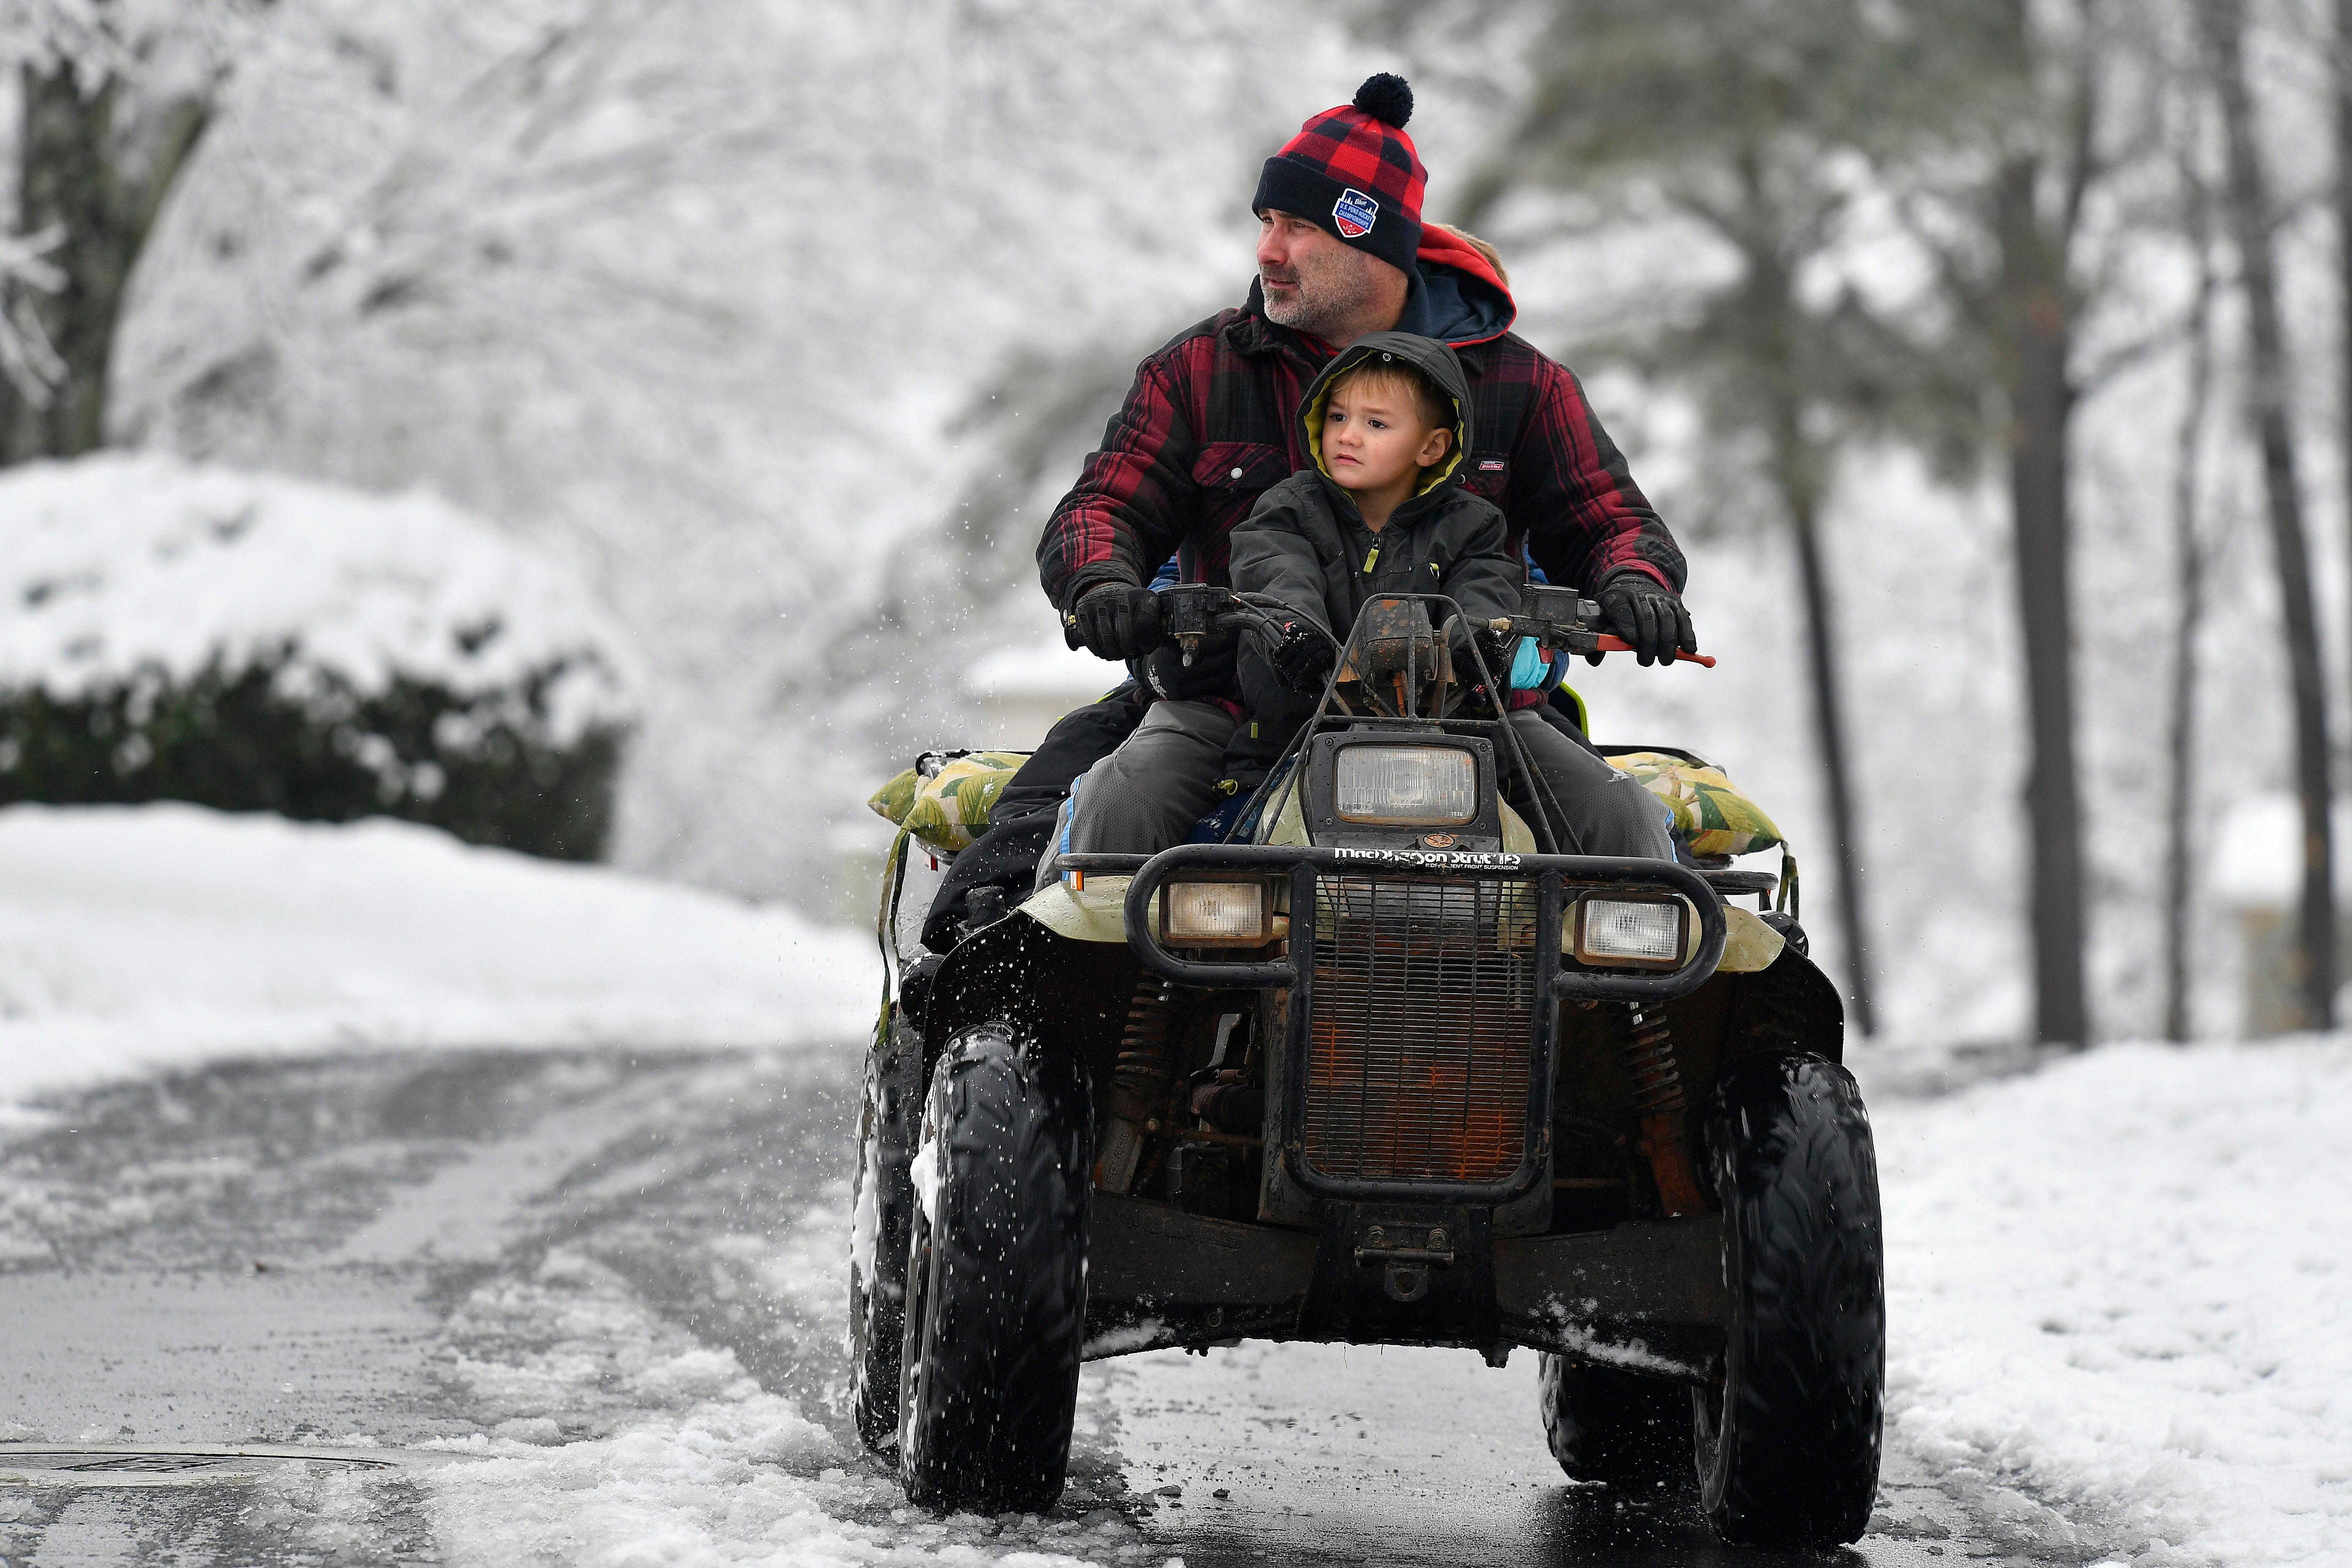 Jimmy Squibb and his son Nash ride an all-terrain vehicle as they survey their neighborhood after a heavy snow fall, Saturday, Dec. 9, 2017, in Kennesaw, Ga. The frigid temperatures behind a cold front combined with moisture off the Gulf of Mexico to bring unusual wintry weather to parts of the South. (AP Photo/Mike Stewart)